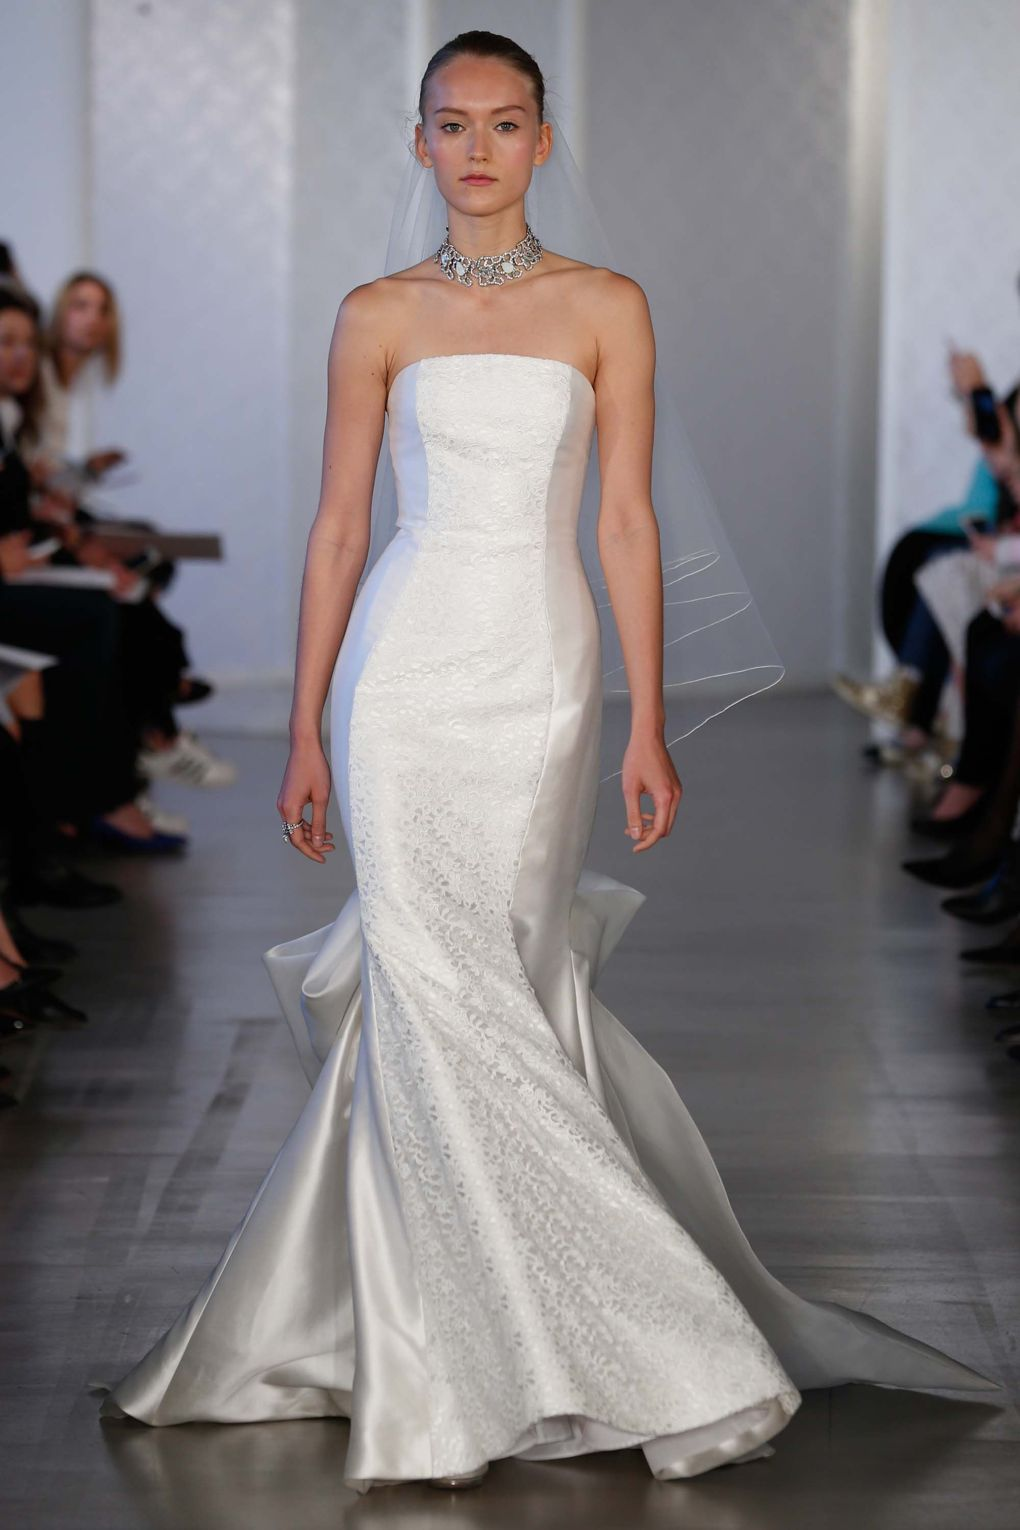 Getting Married? Let These Wedding Dresses Inspire You...